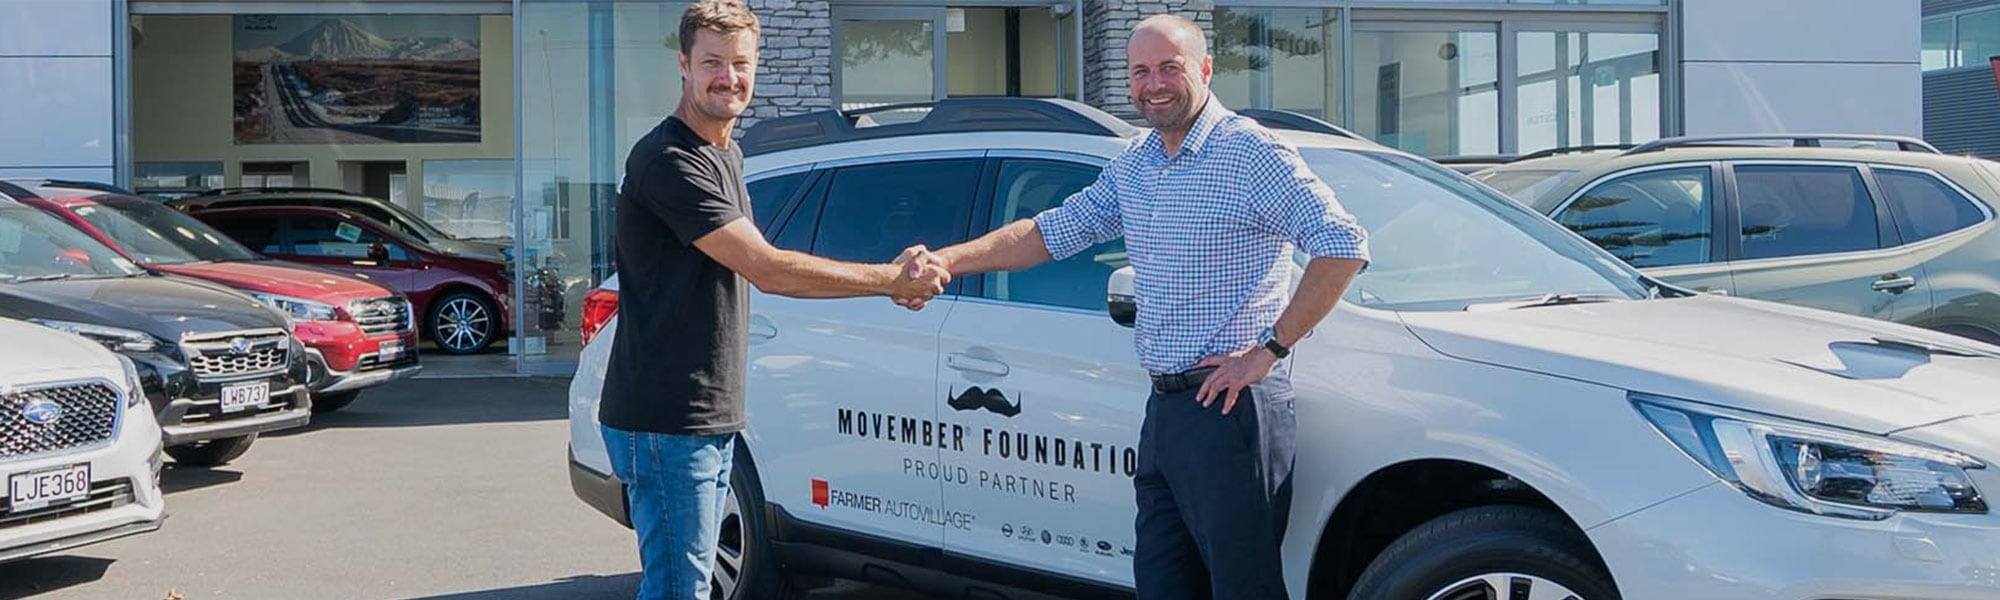 The Drive Behind the Movember Foundation